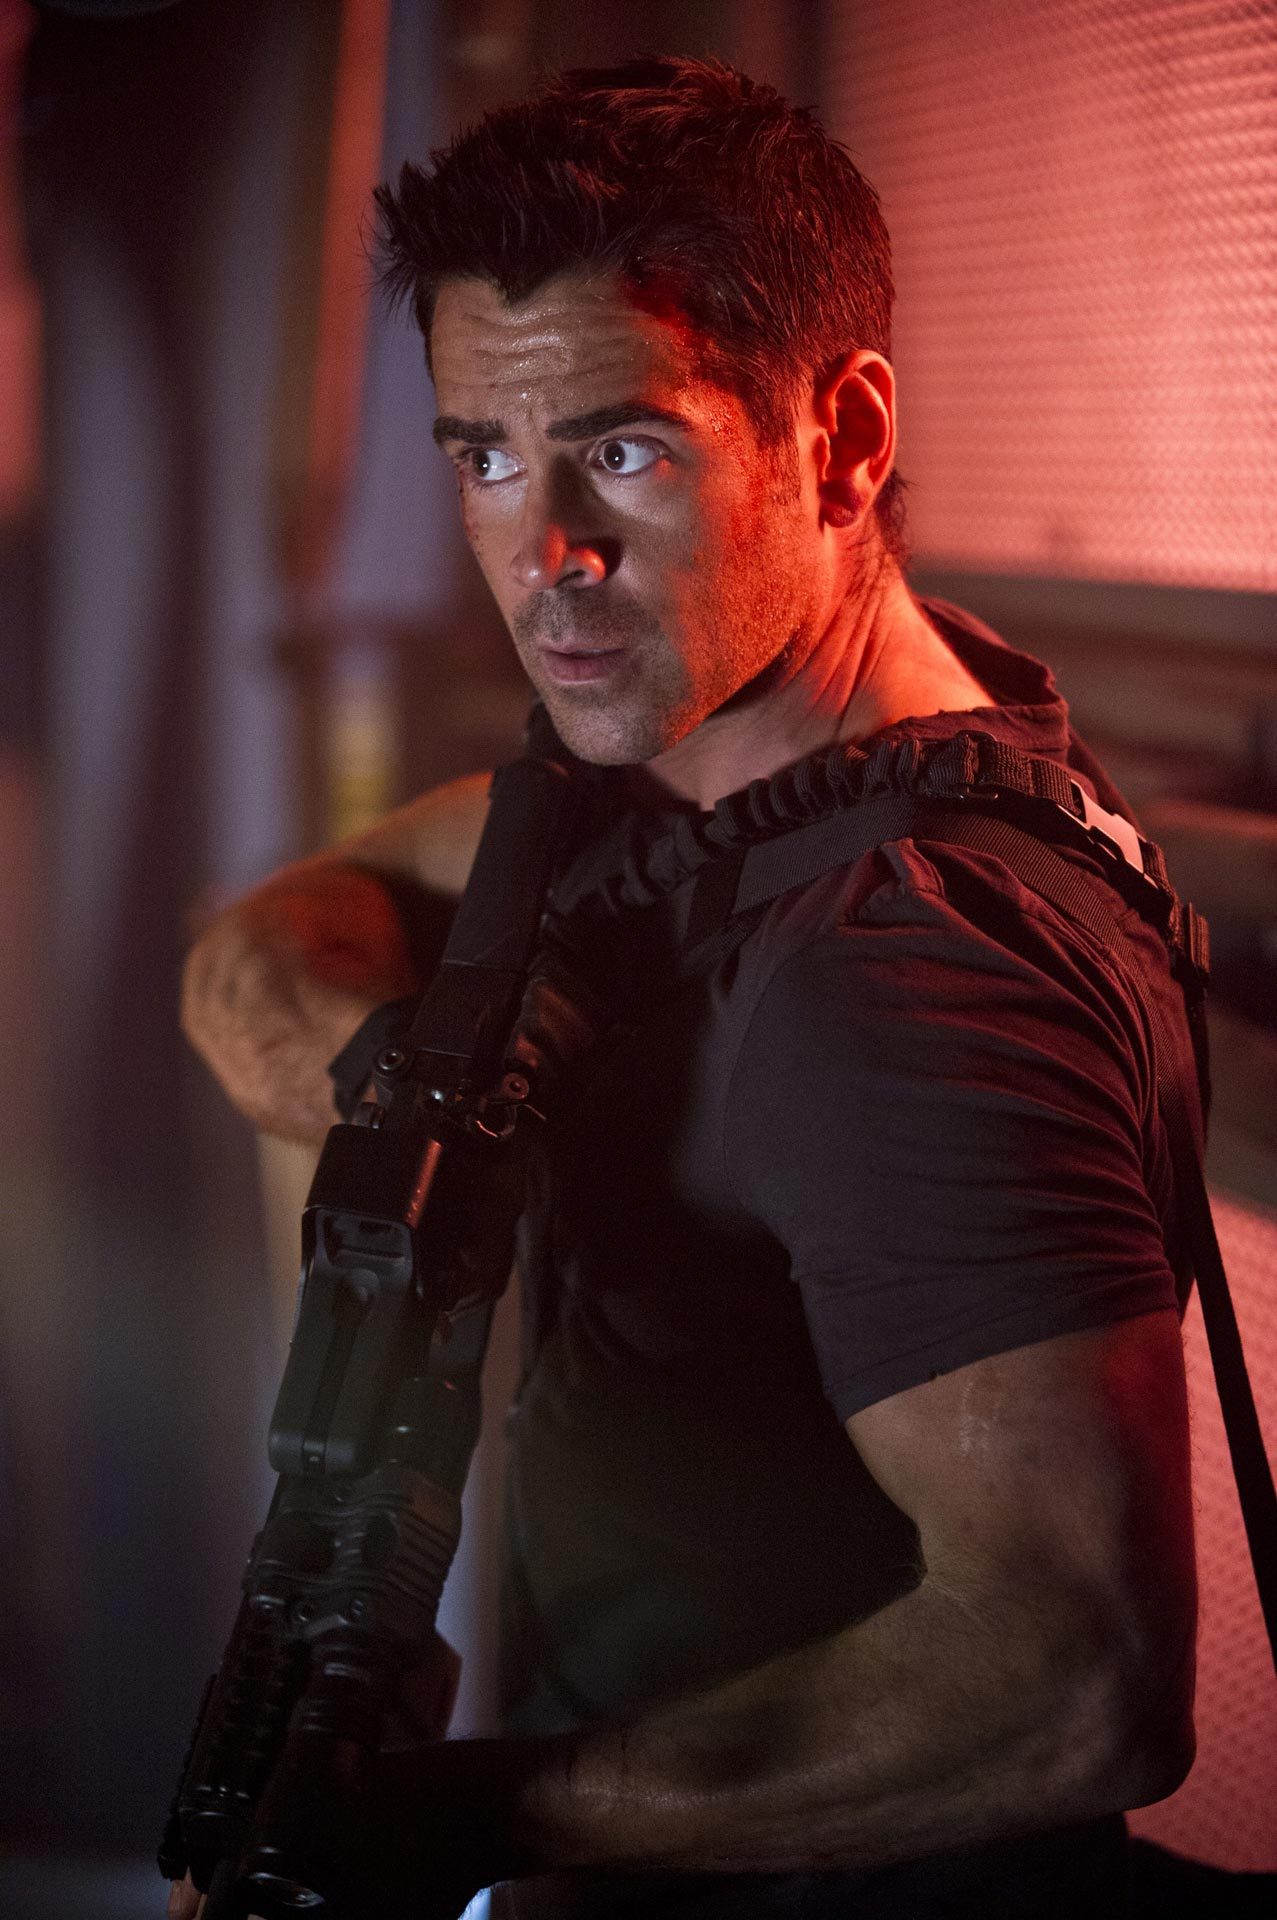 Colin Farrell in Total Recall - HeyUGuys